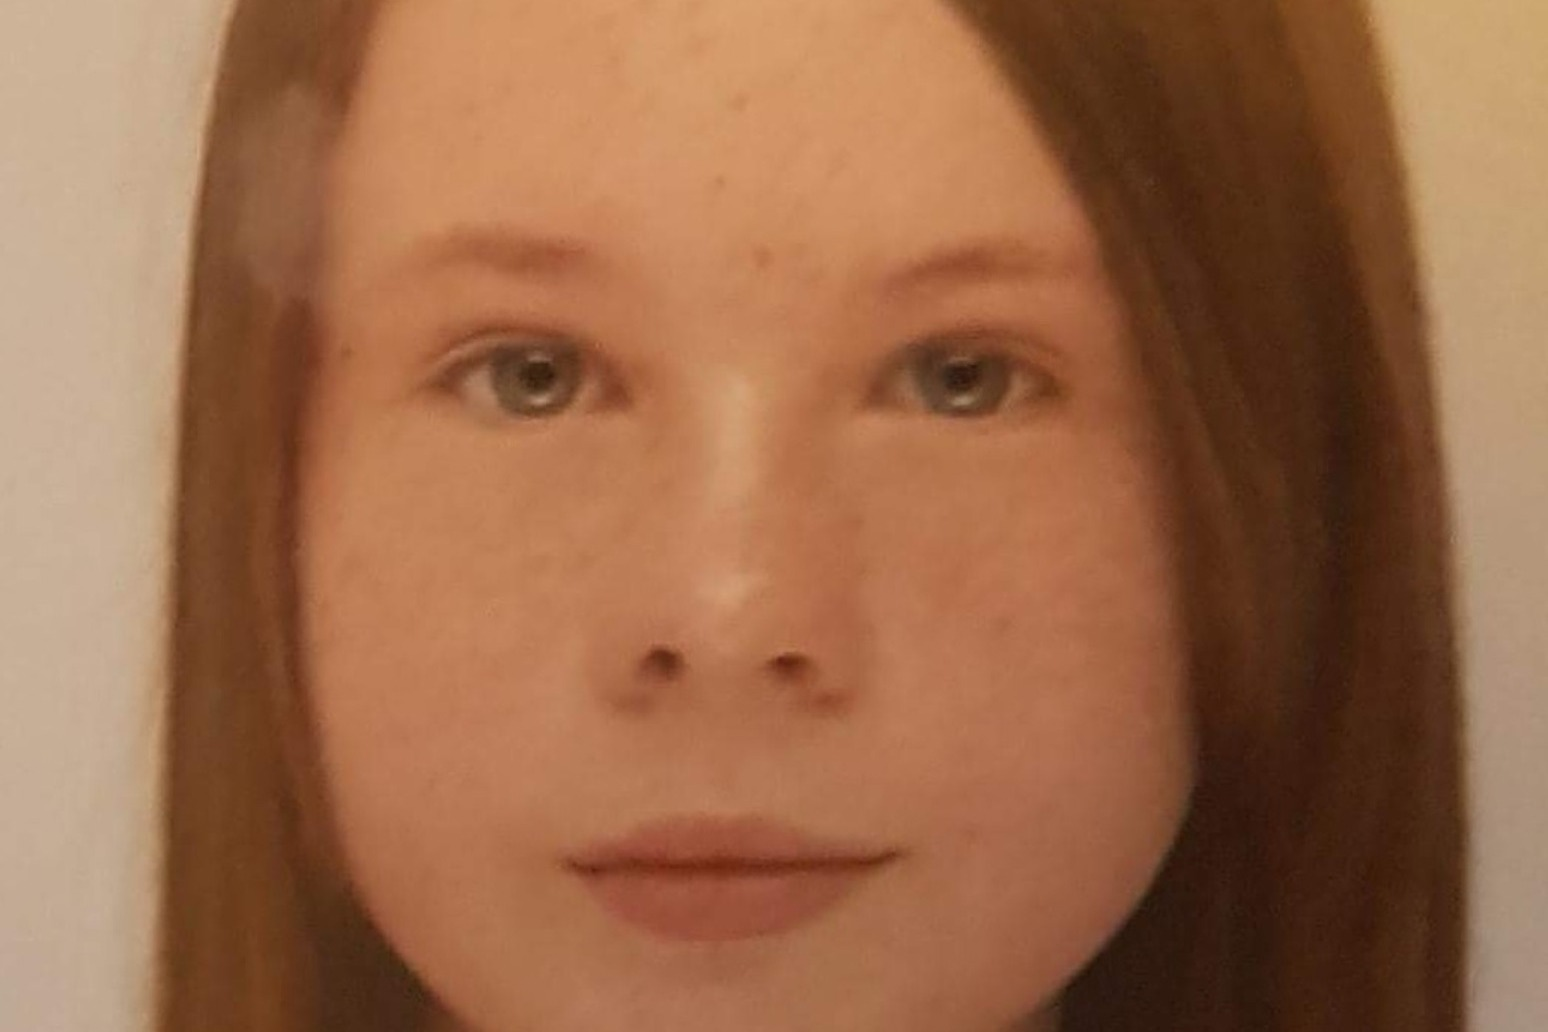 Police find a body in the search for missing 11-year-old girl in West Yorkshire